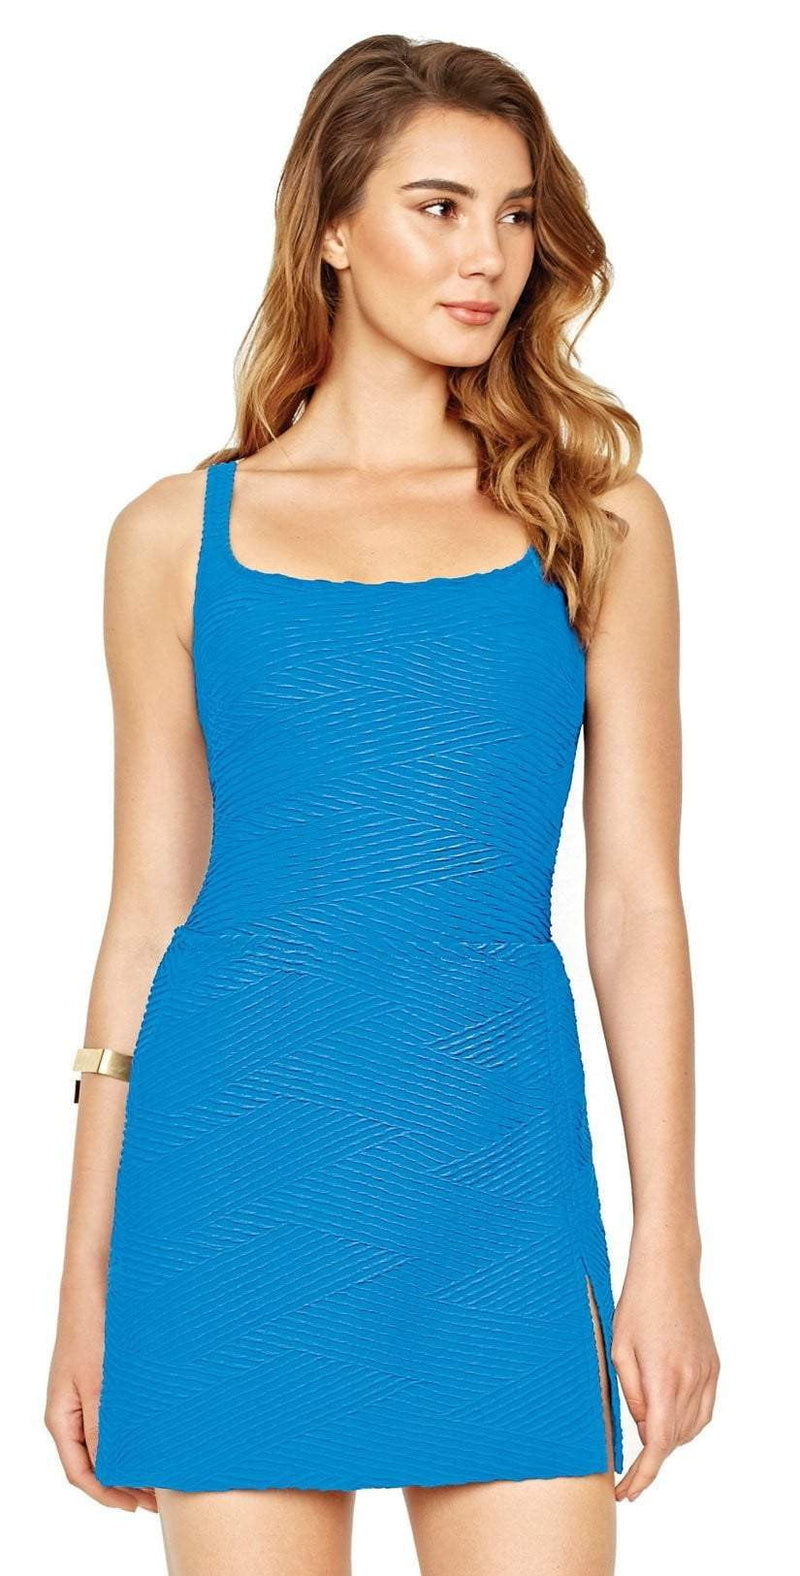 Gottex Essence Cover-up Skirt in Blue 18ES-413-442: